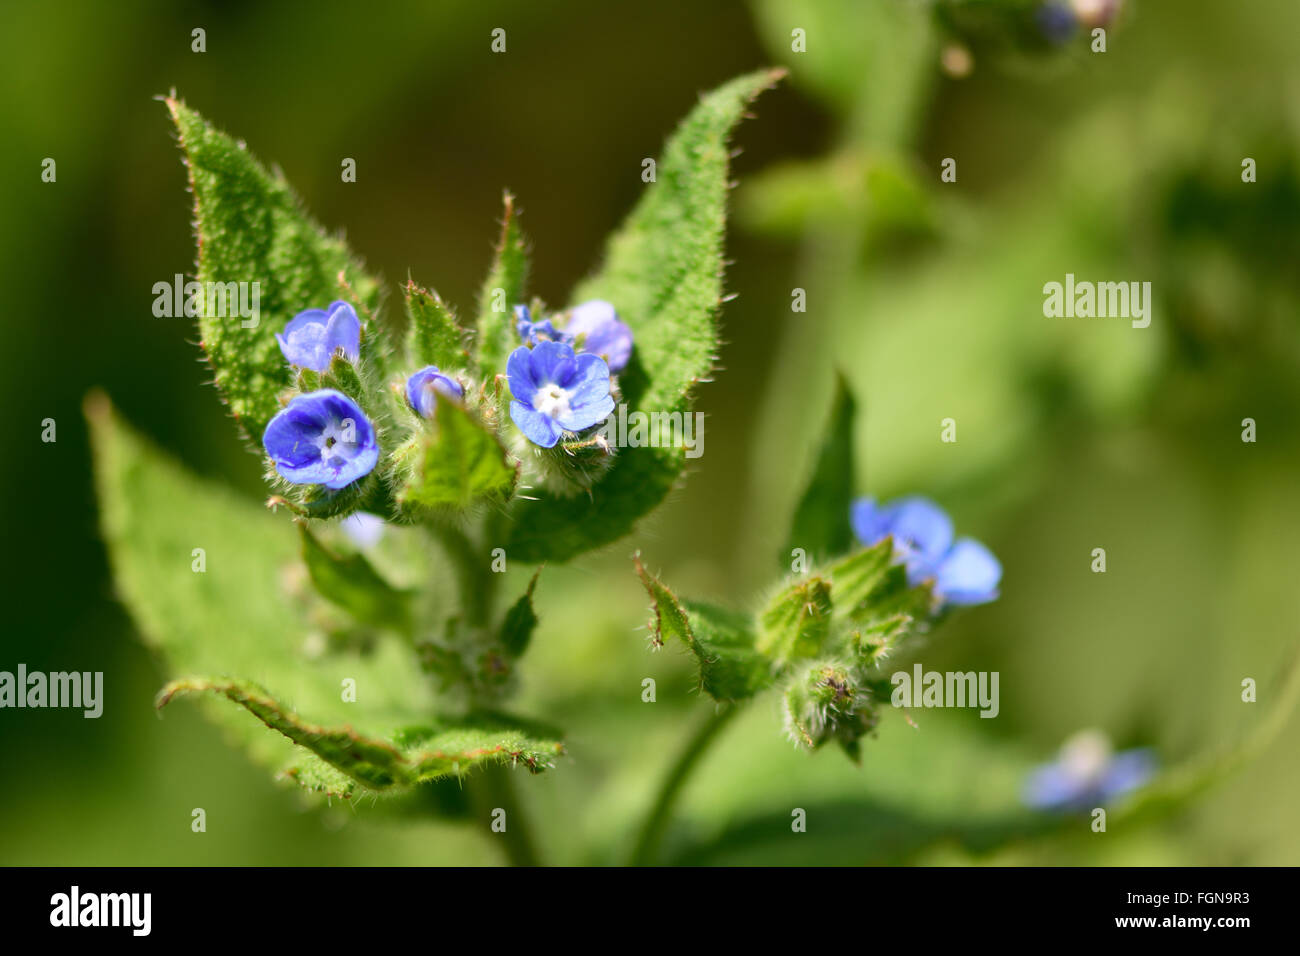 Bugloss anchusa arvensis blue flowers on a coarsely hairy plant blue flowers on a coarsely hairy plant in flower in the family boraginaceae izmirmasajfo Choice Image